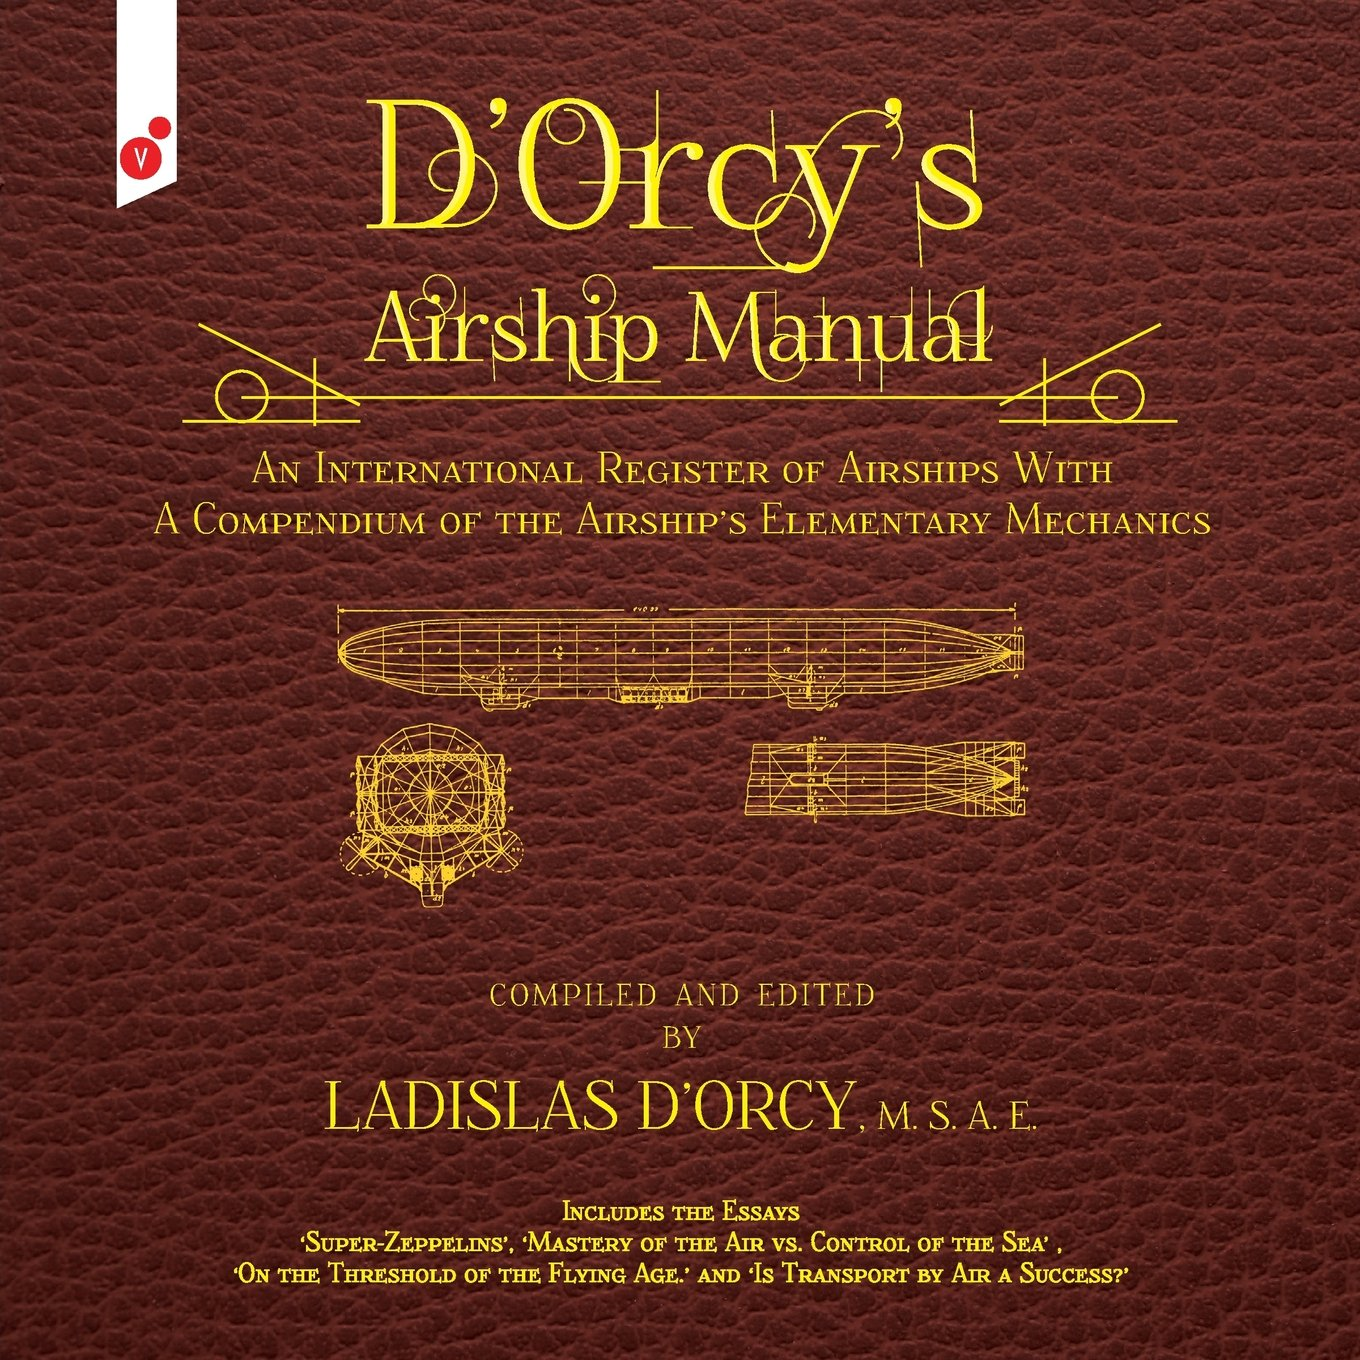 Manual For Hydro Smart Ebook Carrier Weathermaker 9200 Parts Diagram Caroldoey Array D U0027orcy U0027s Airship An International Register Of Airships With Rh Amazon Com